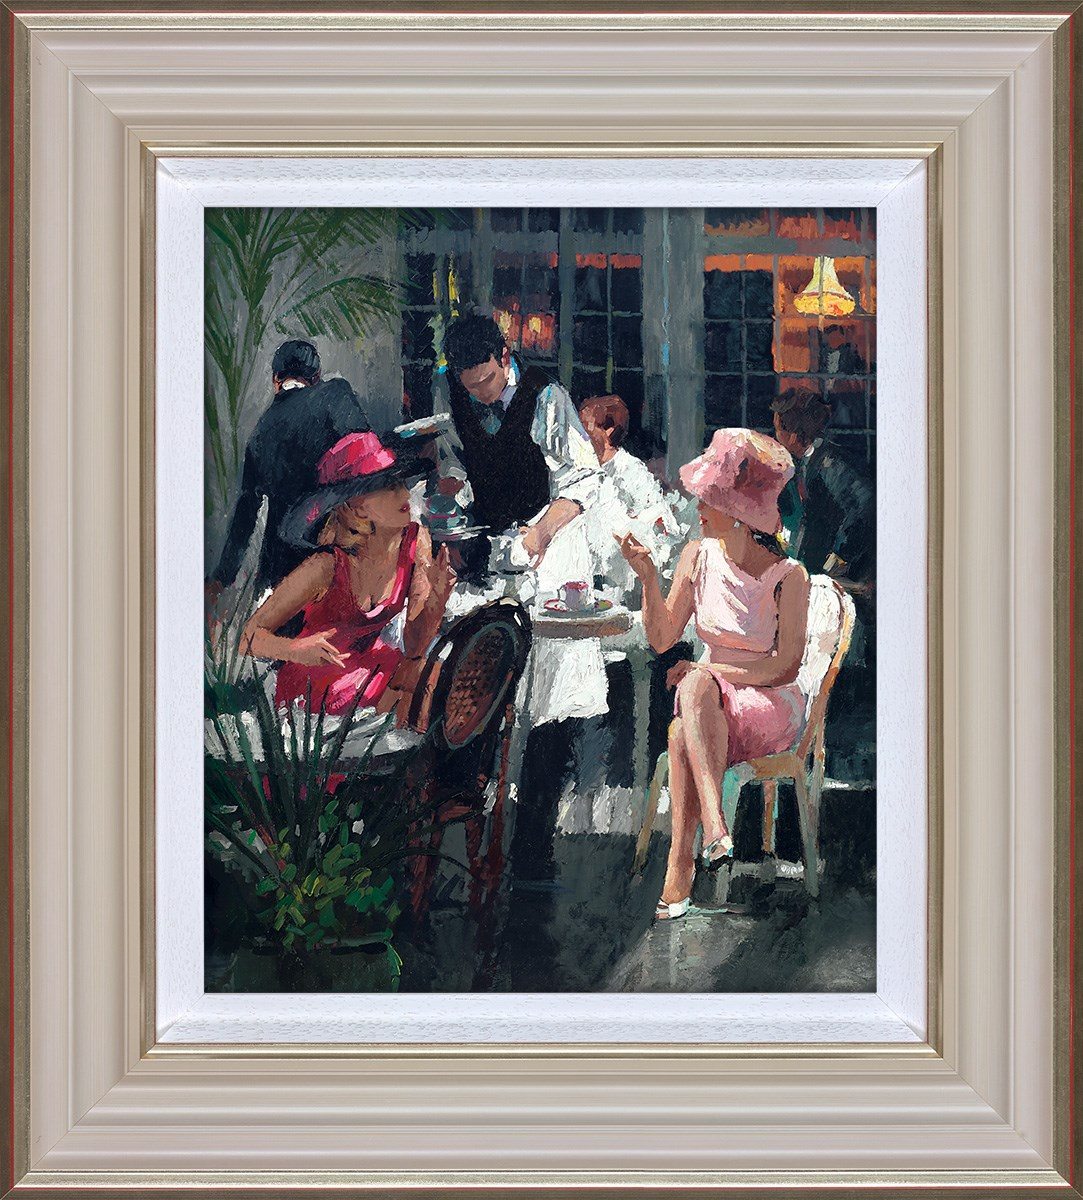 Cafe Royal by Sherree Valentine Daines